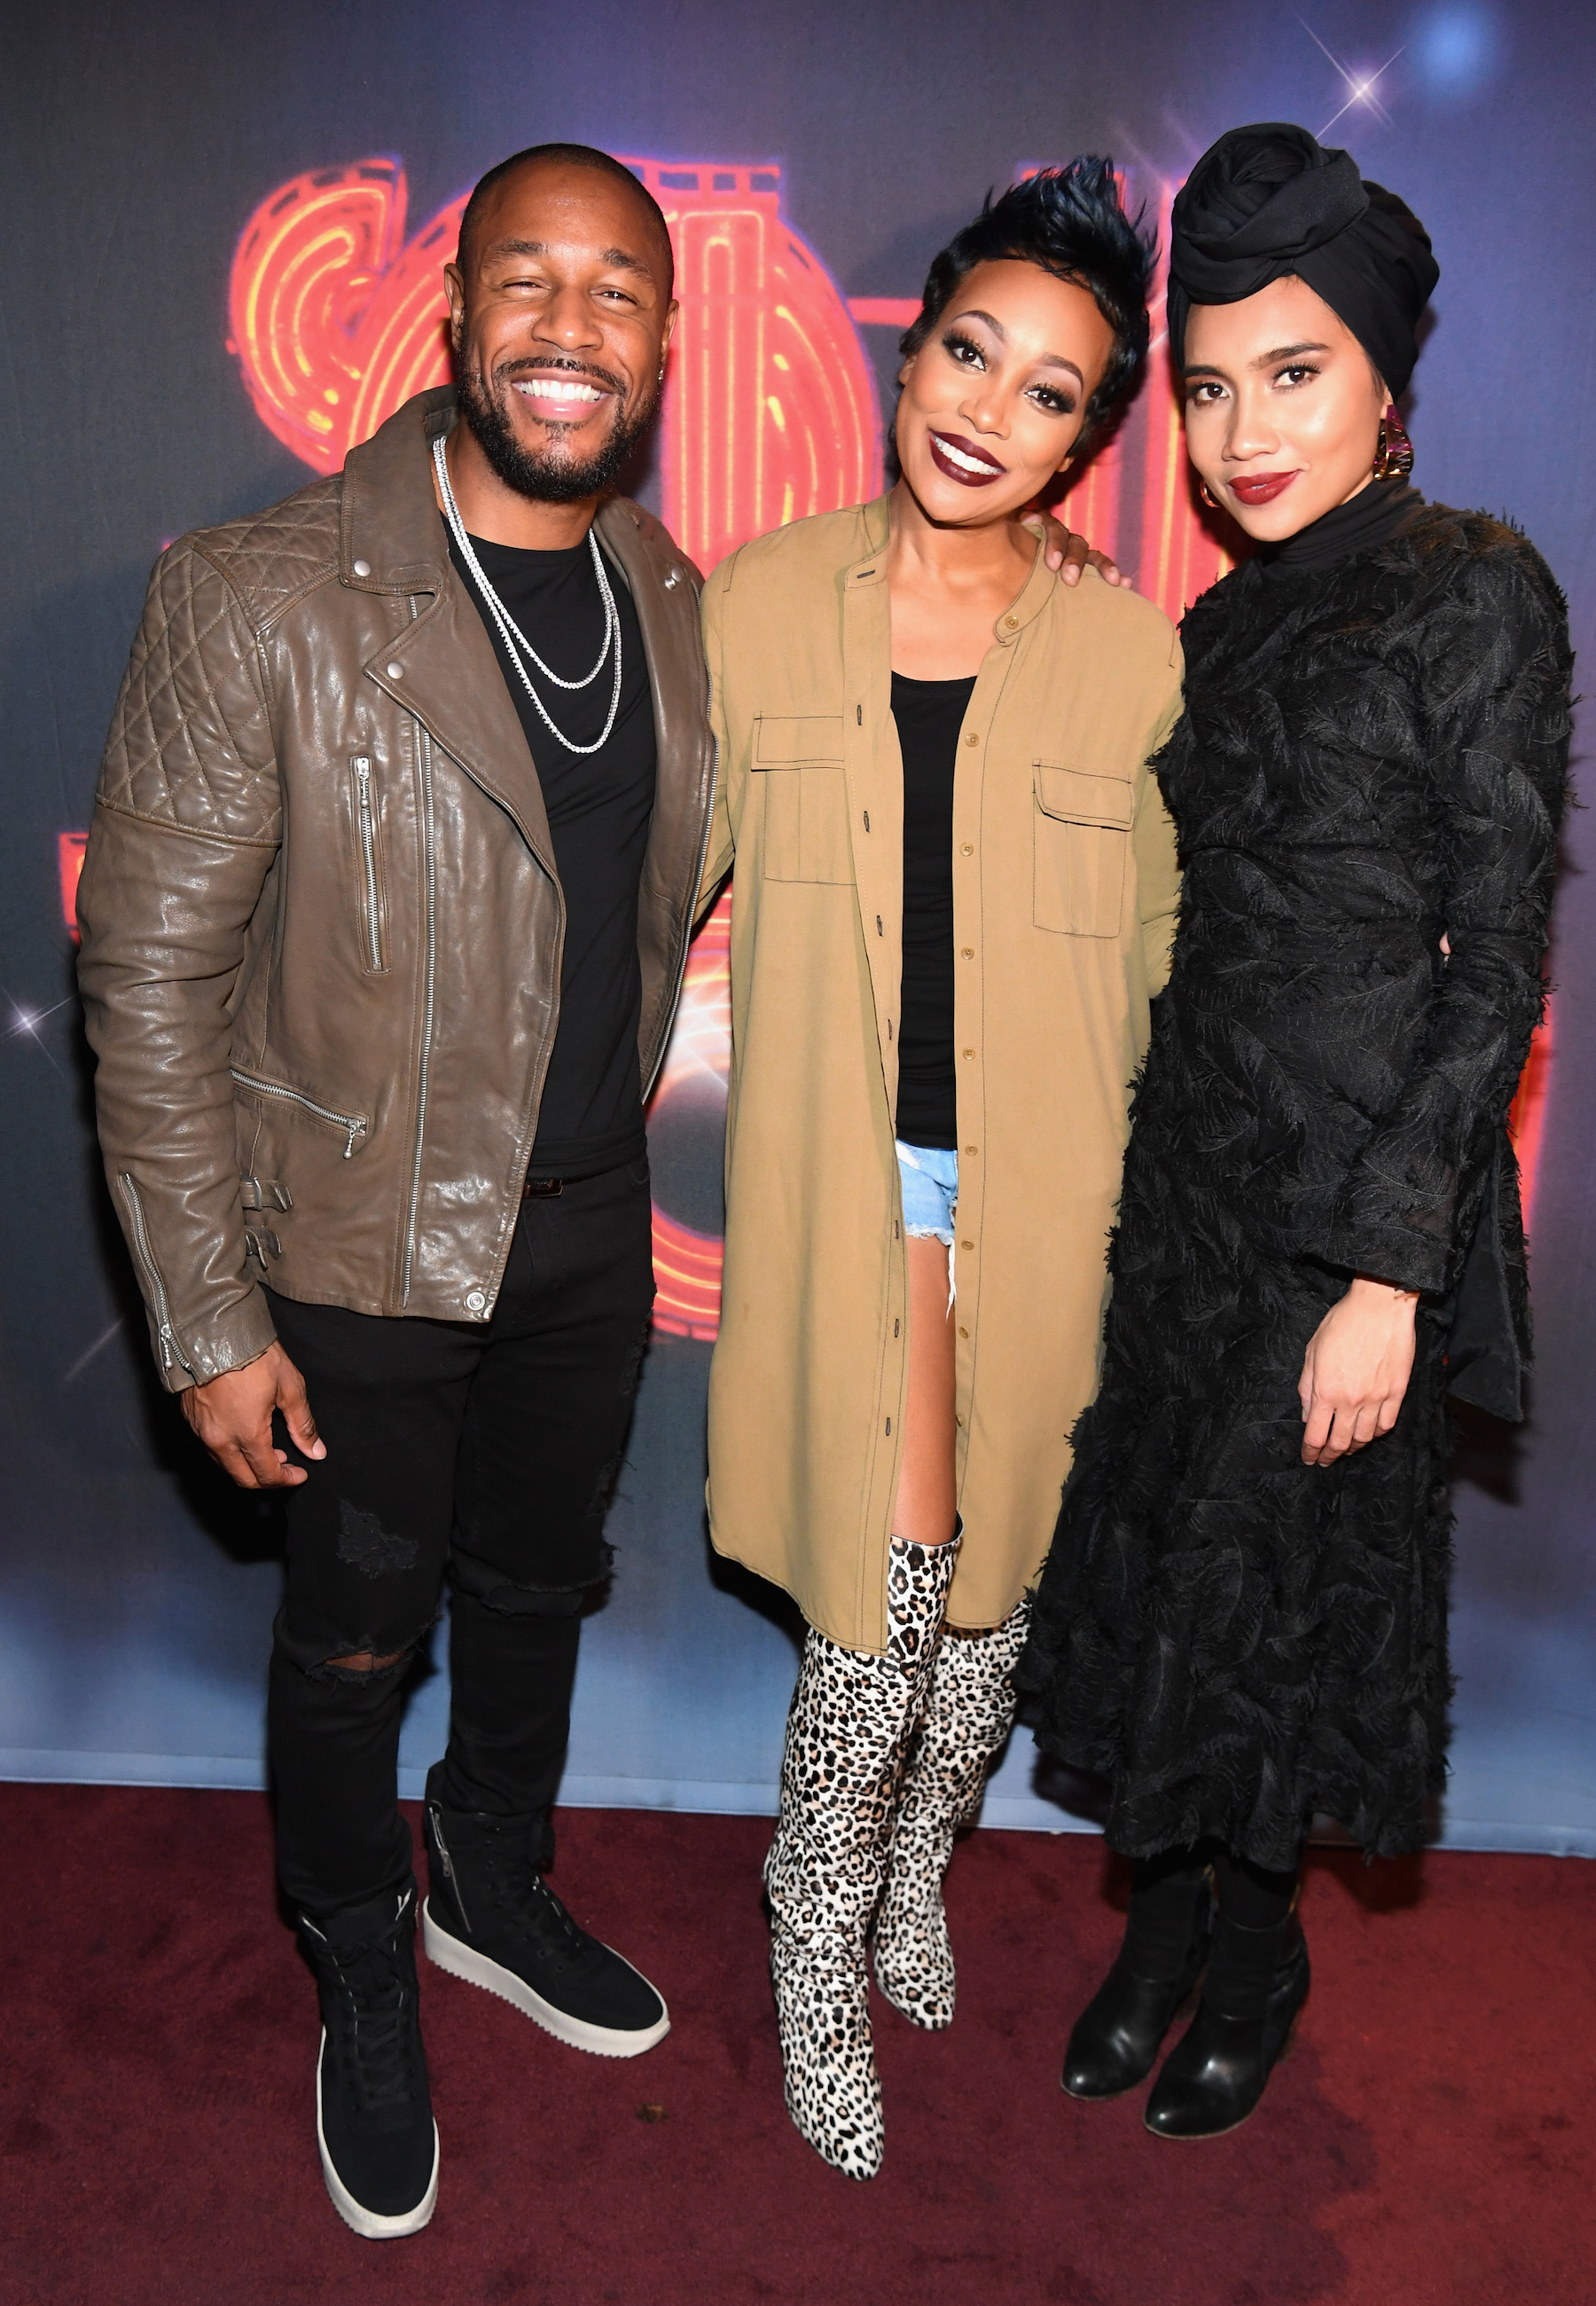 """LAS VEGAS, NV - NOVEMBER 03: (L-R) Singers Tank, Monica and Yuna attend """"Acoustically Speaking Sponsored by Toyota"""" at House of Blues during Soul Train Weekend on November 3, 2016 in Las Vegas, Nevada. (Photo by Paras Griffin/BET/Getty Images for BET)"""